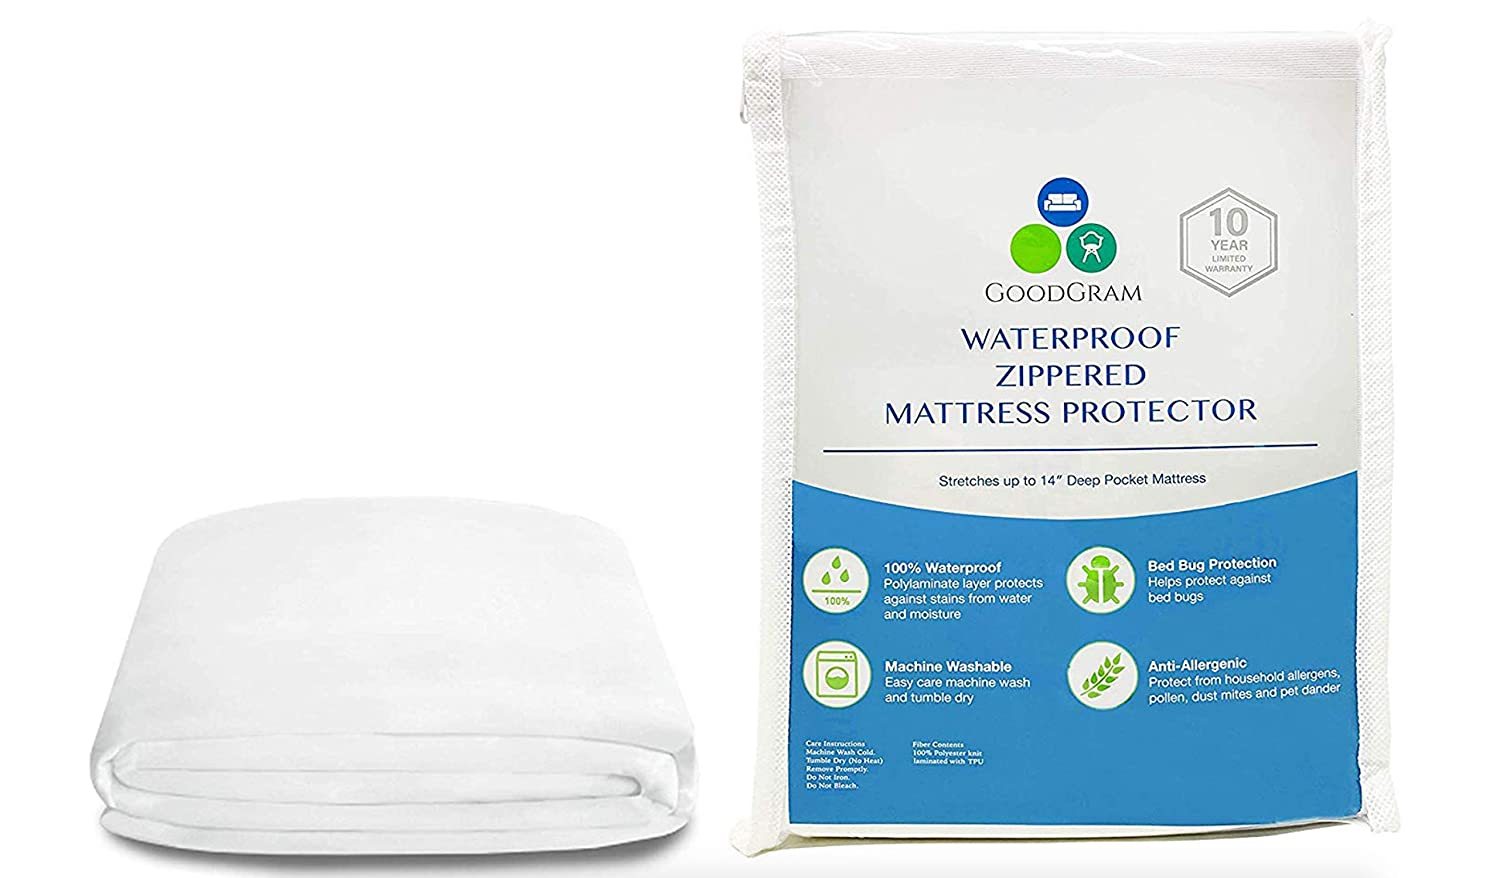 Queen GoodGram 100/% Waterproof Bed Bug Blocker Anti Allergenic /& Anti Microbial Fully Encased Zippered Deep Pocket Mattress Cover Protectors Assorted Sizes